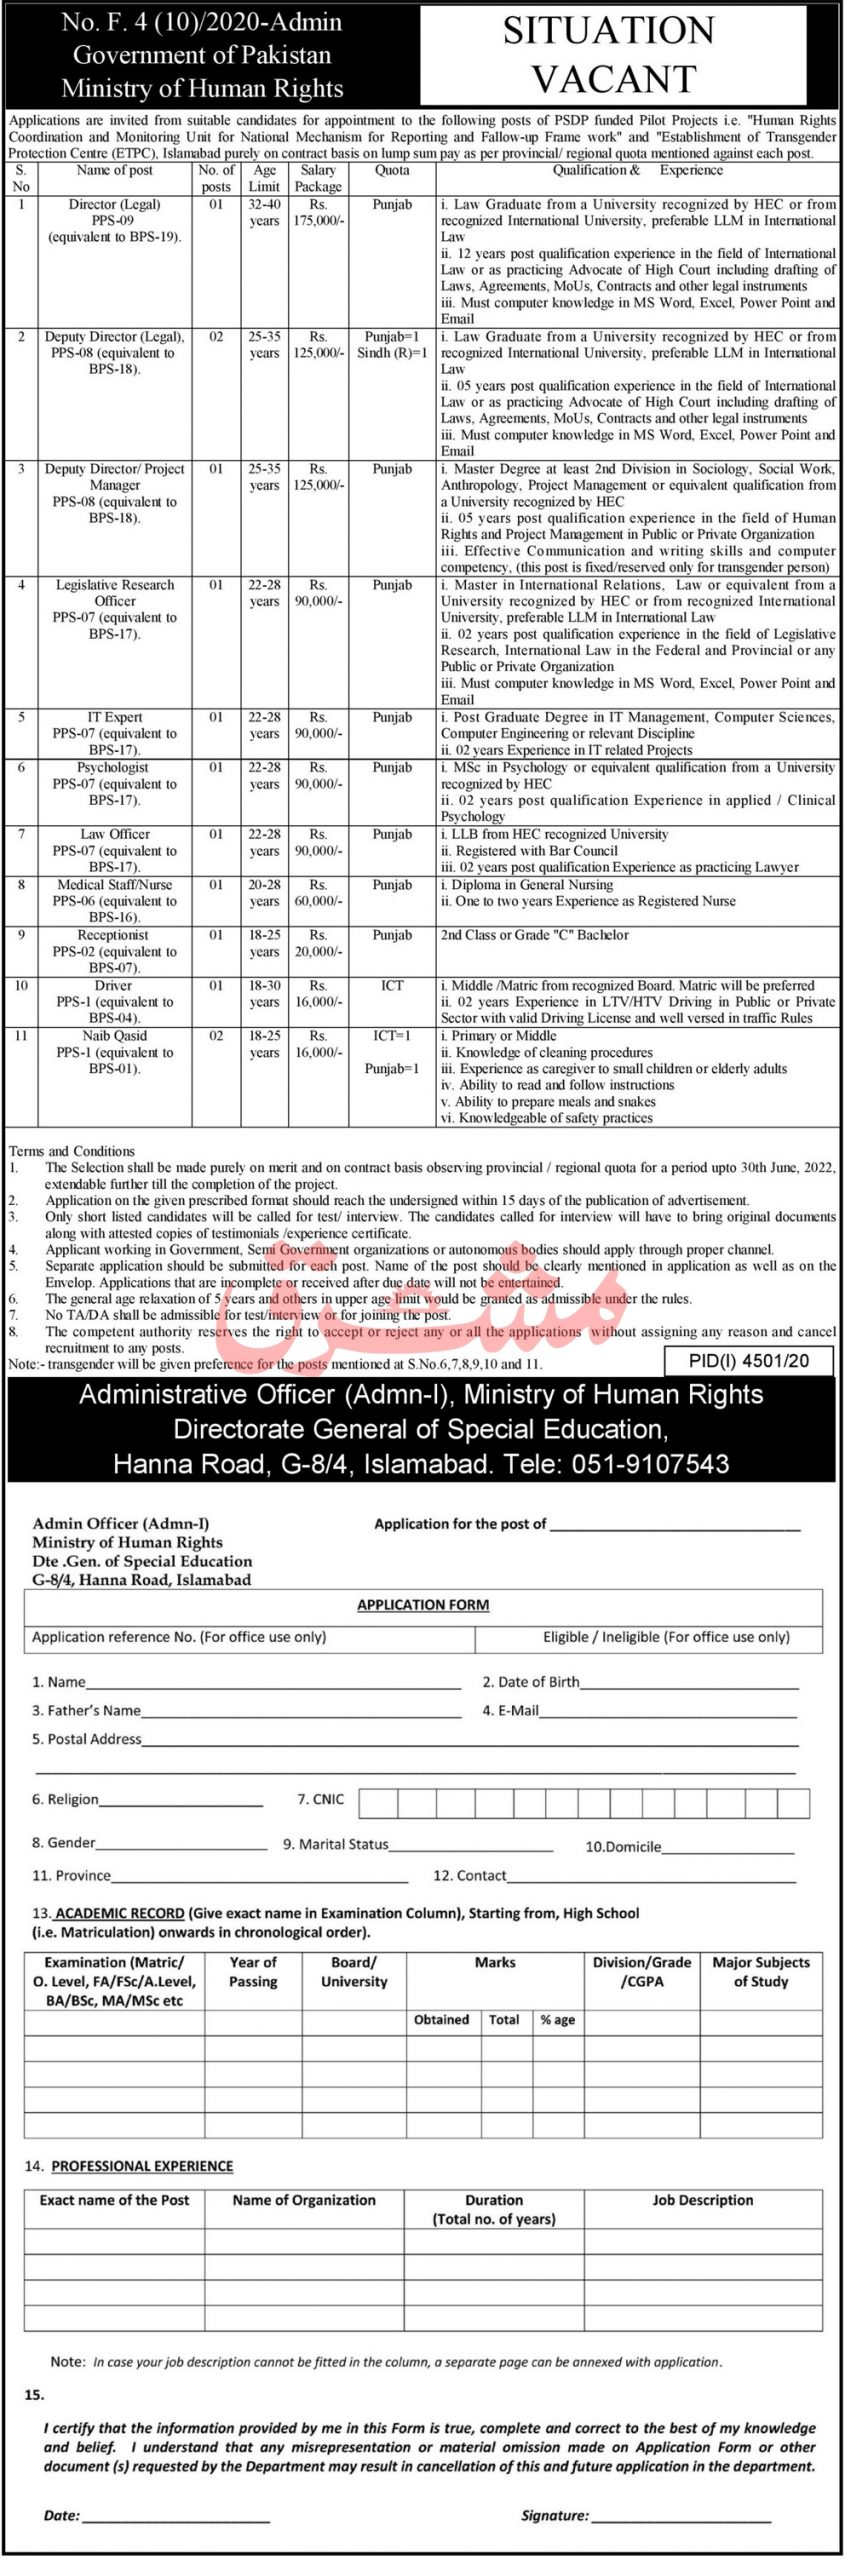 Government of Pakistan Ministry of Human Rights Islamabad Jobs February 2021